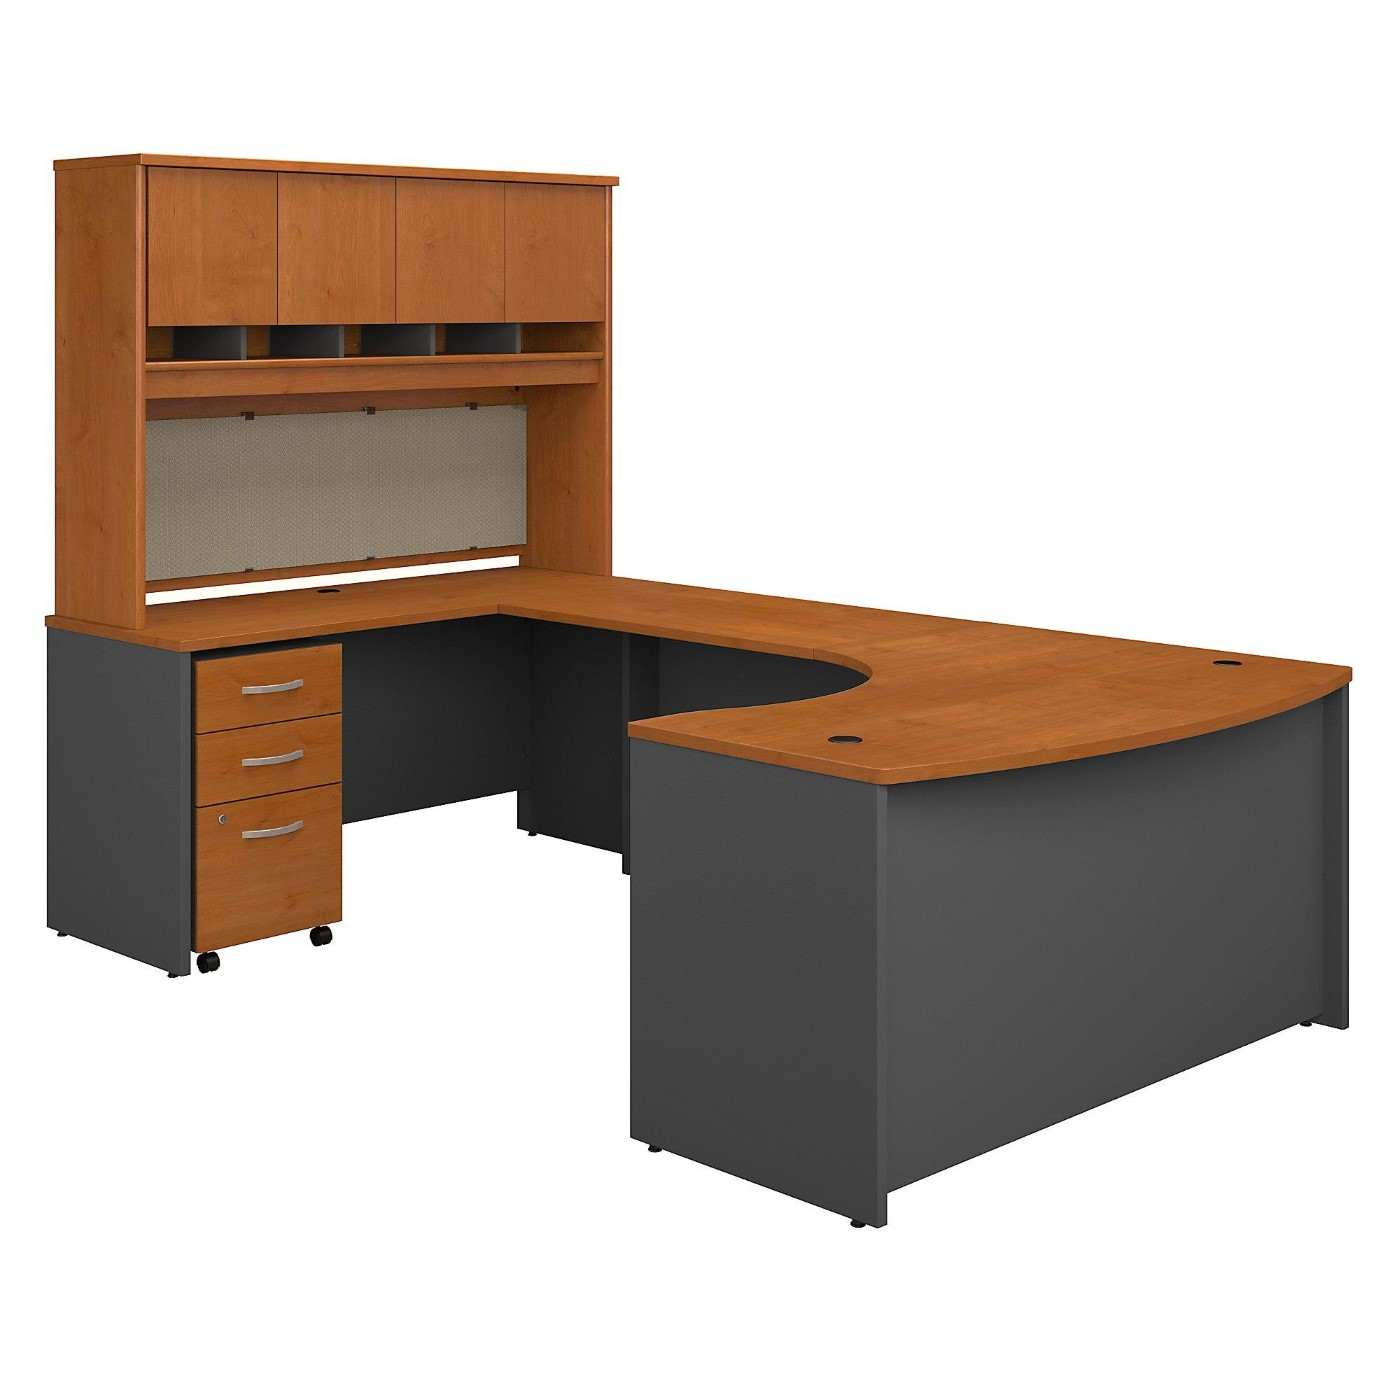 </b></font><b>BUSH BUSINESS FURNITURE SERIES C 60W RIGHT HANDED BOW FRONT U SHAPED DESK WITH HUTCH AND STORAGE. FREE SHIPPING</b></font>  VIDEO BELOW. </b></font></b>